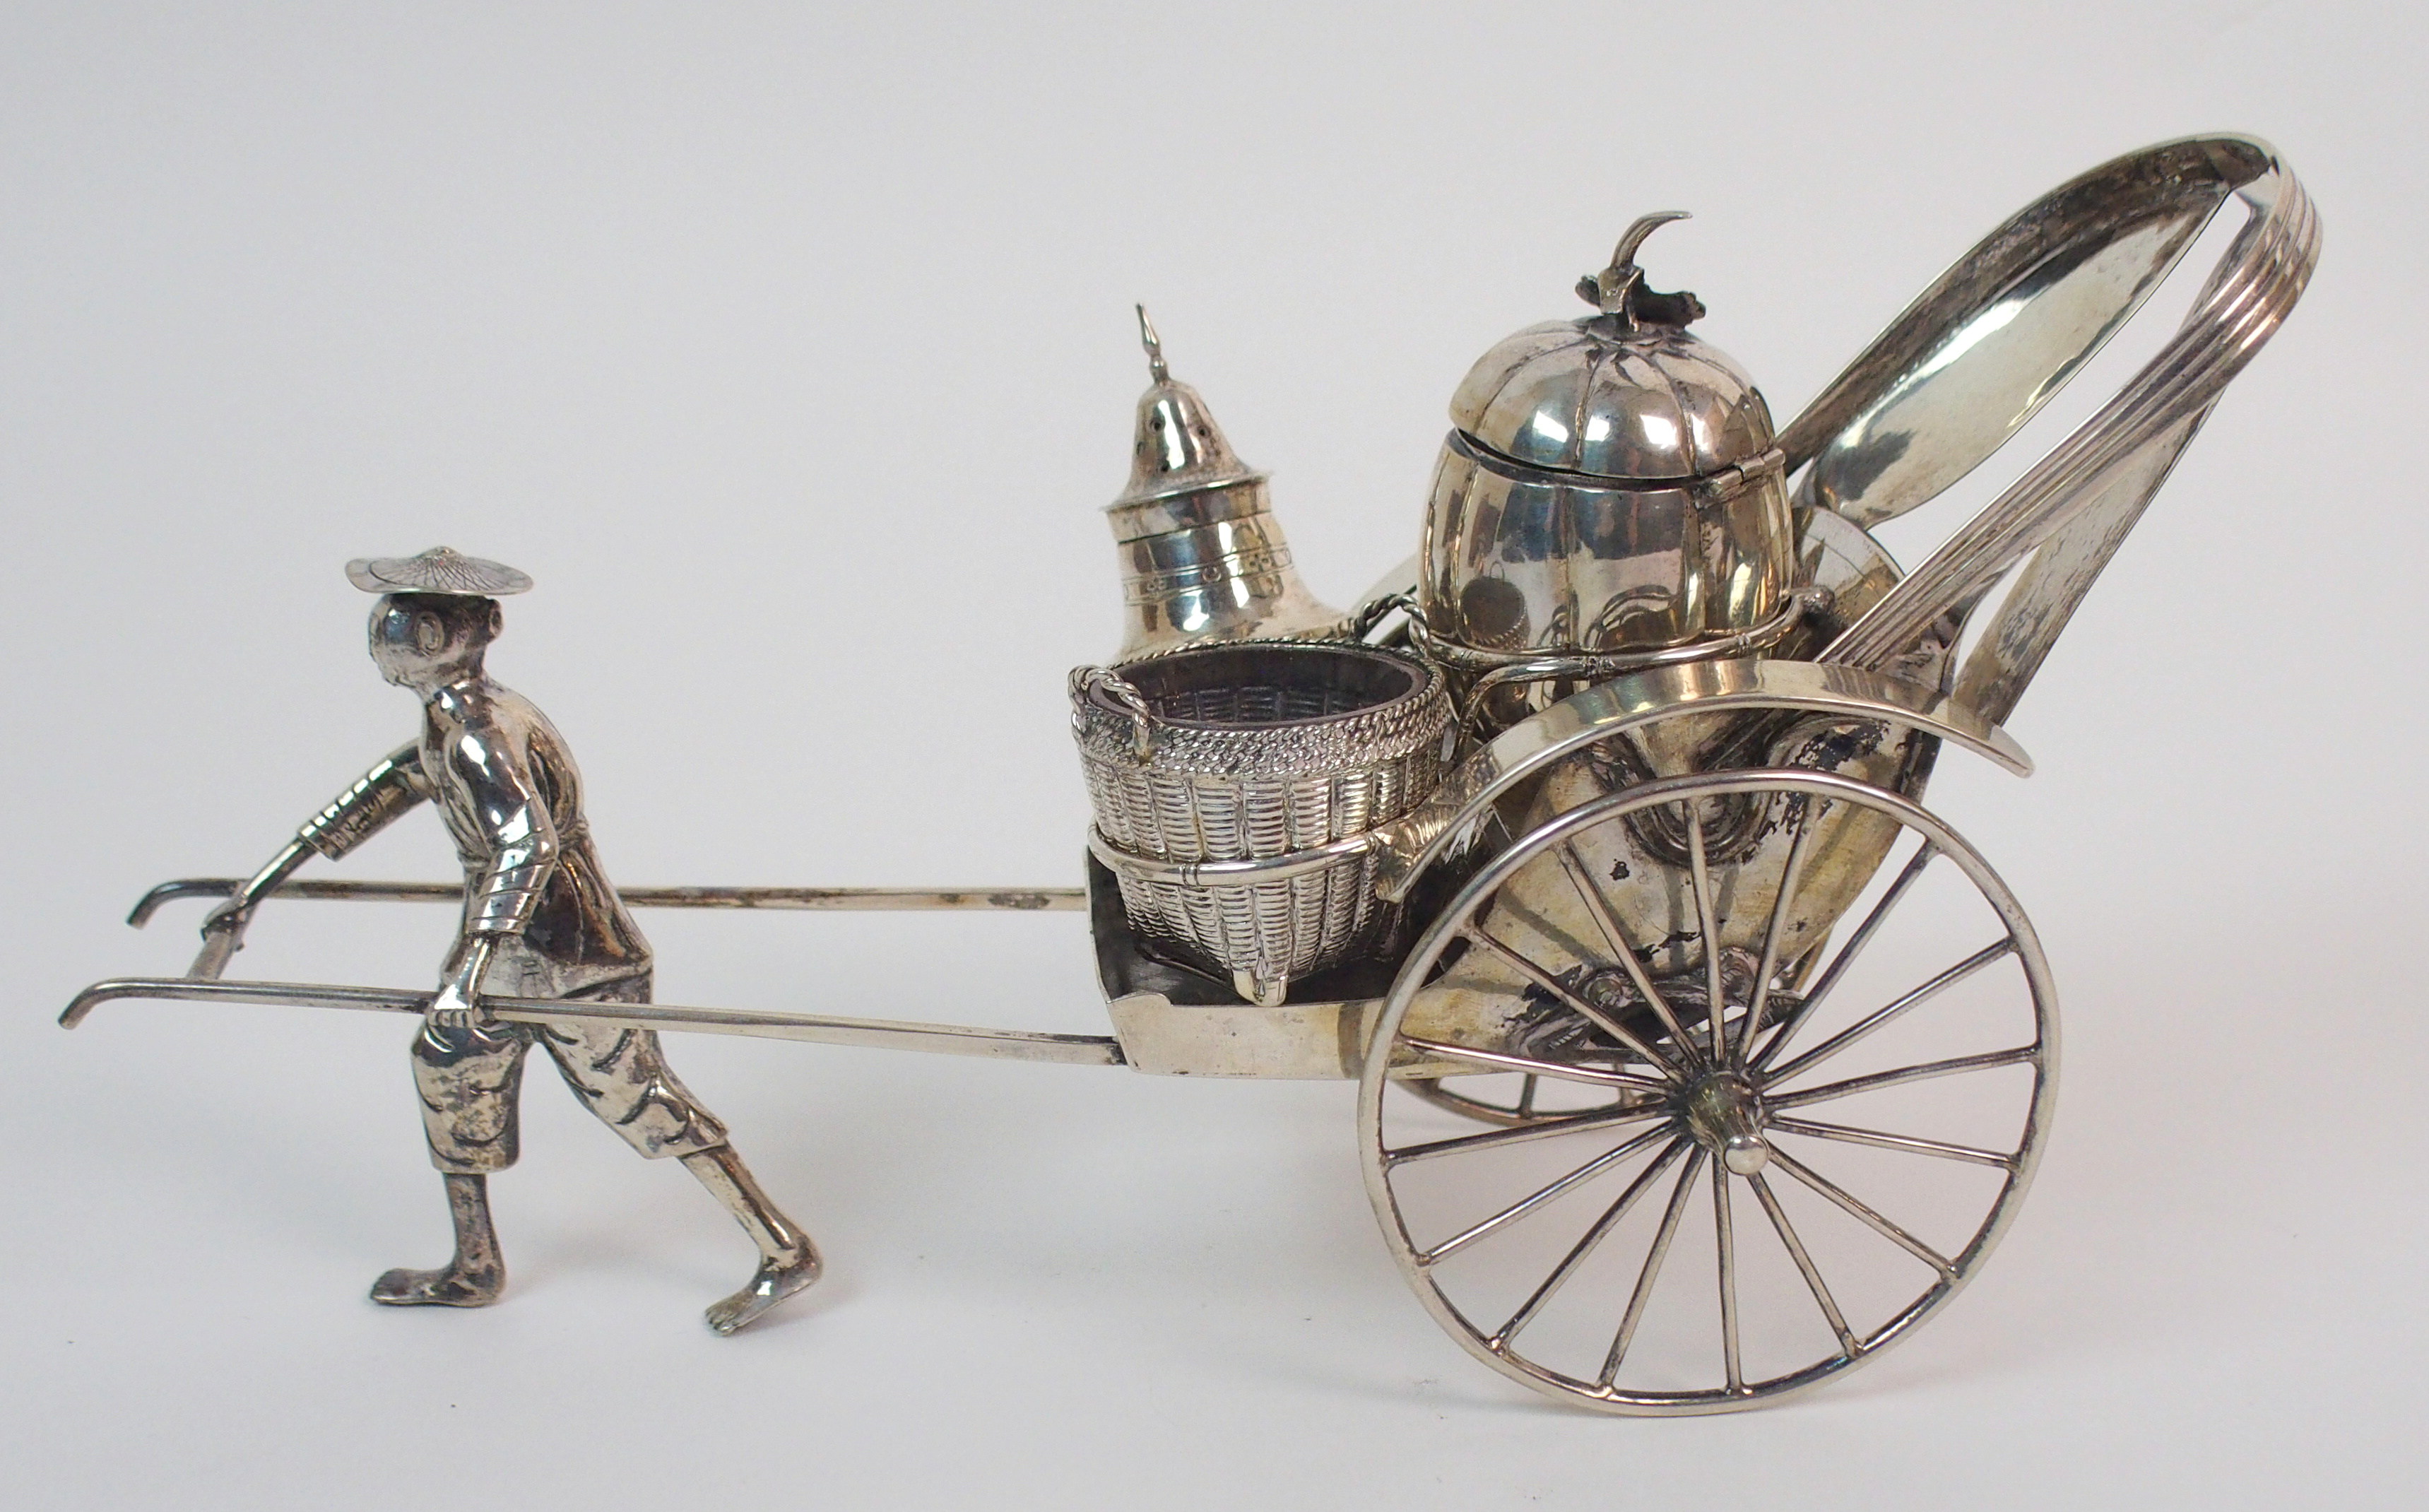 Lot 47 - A CHINESE SILVER RICKSHAW CRUET of traditional type with salt, pepper and mustard pot, the carriage,